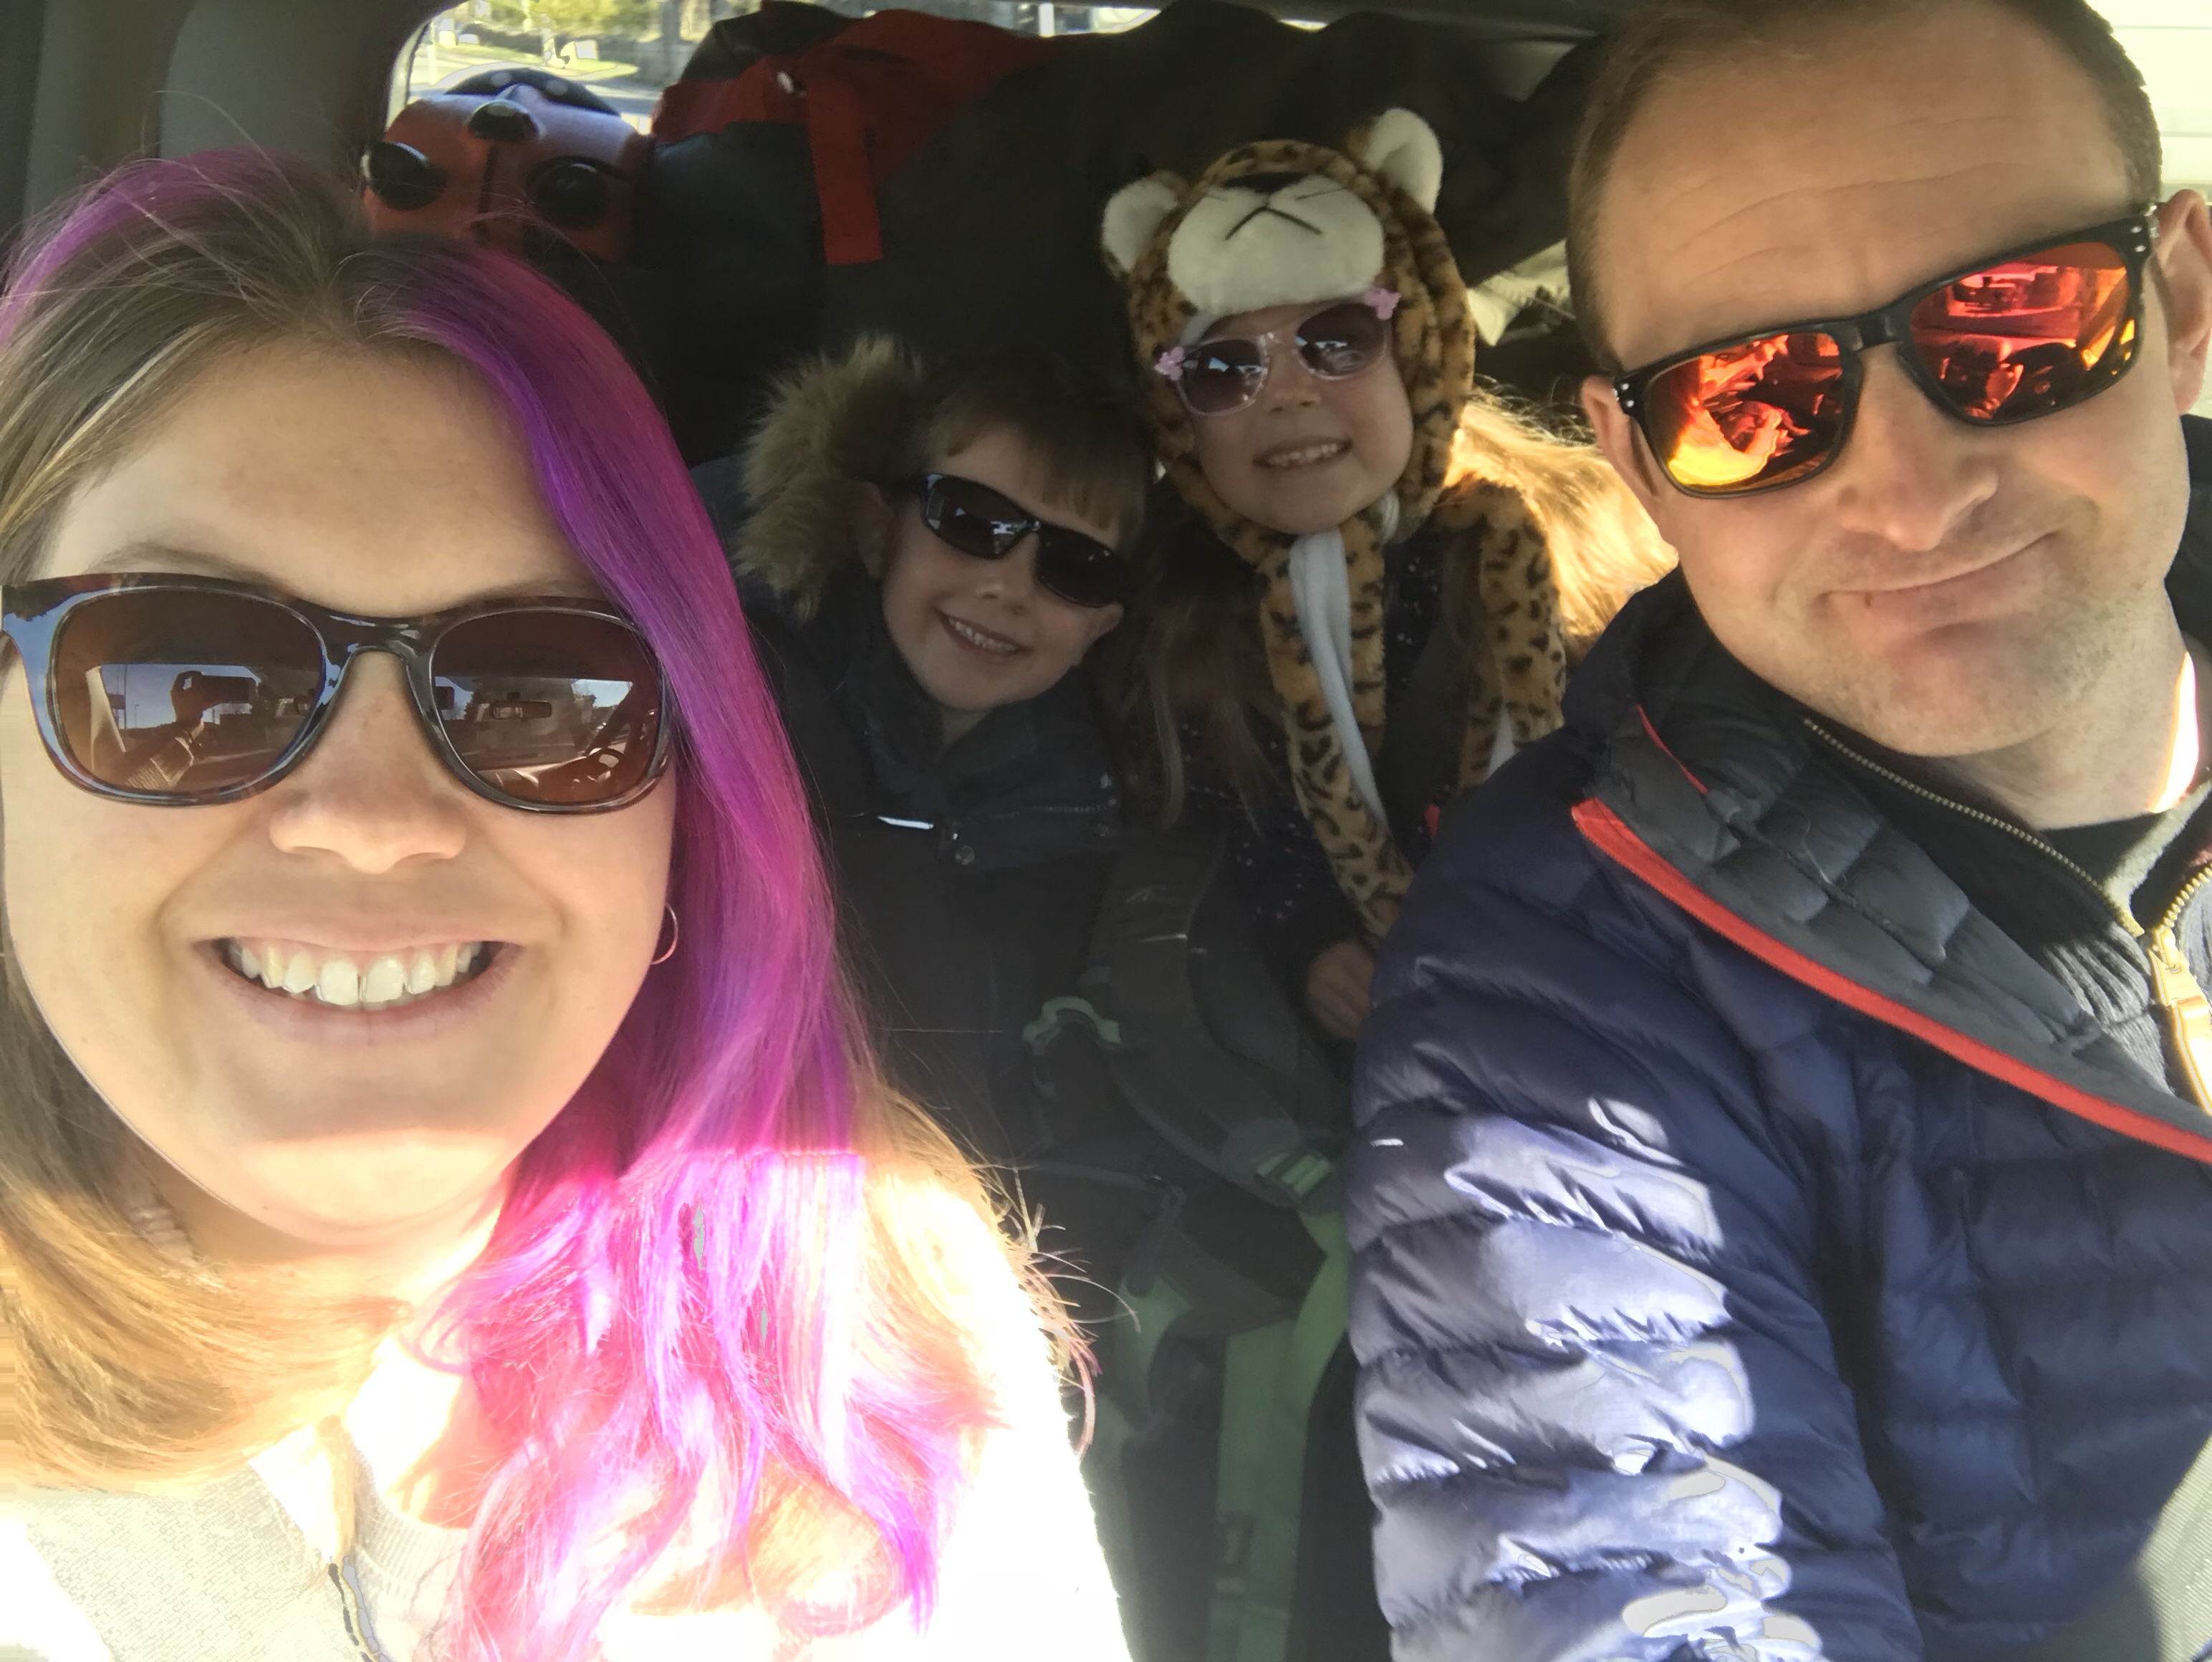 Family Pink Pear Bear off on a road trip in our camper van Wilma with woolly hats and sunnies on, all smiling at the same time for once!